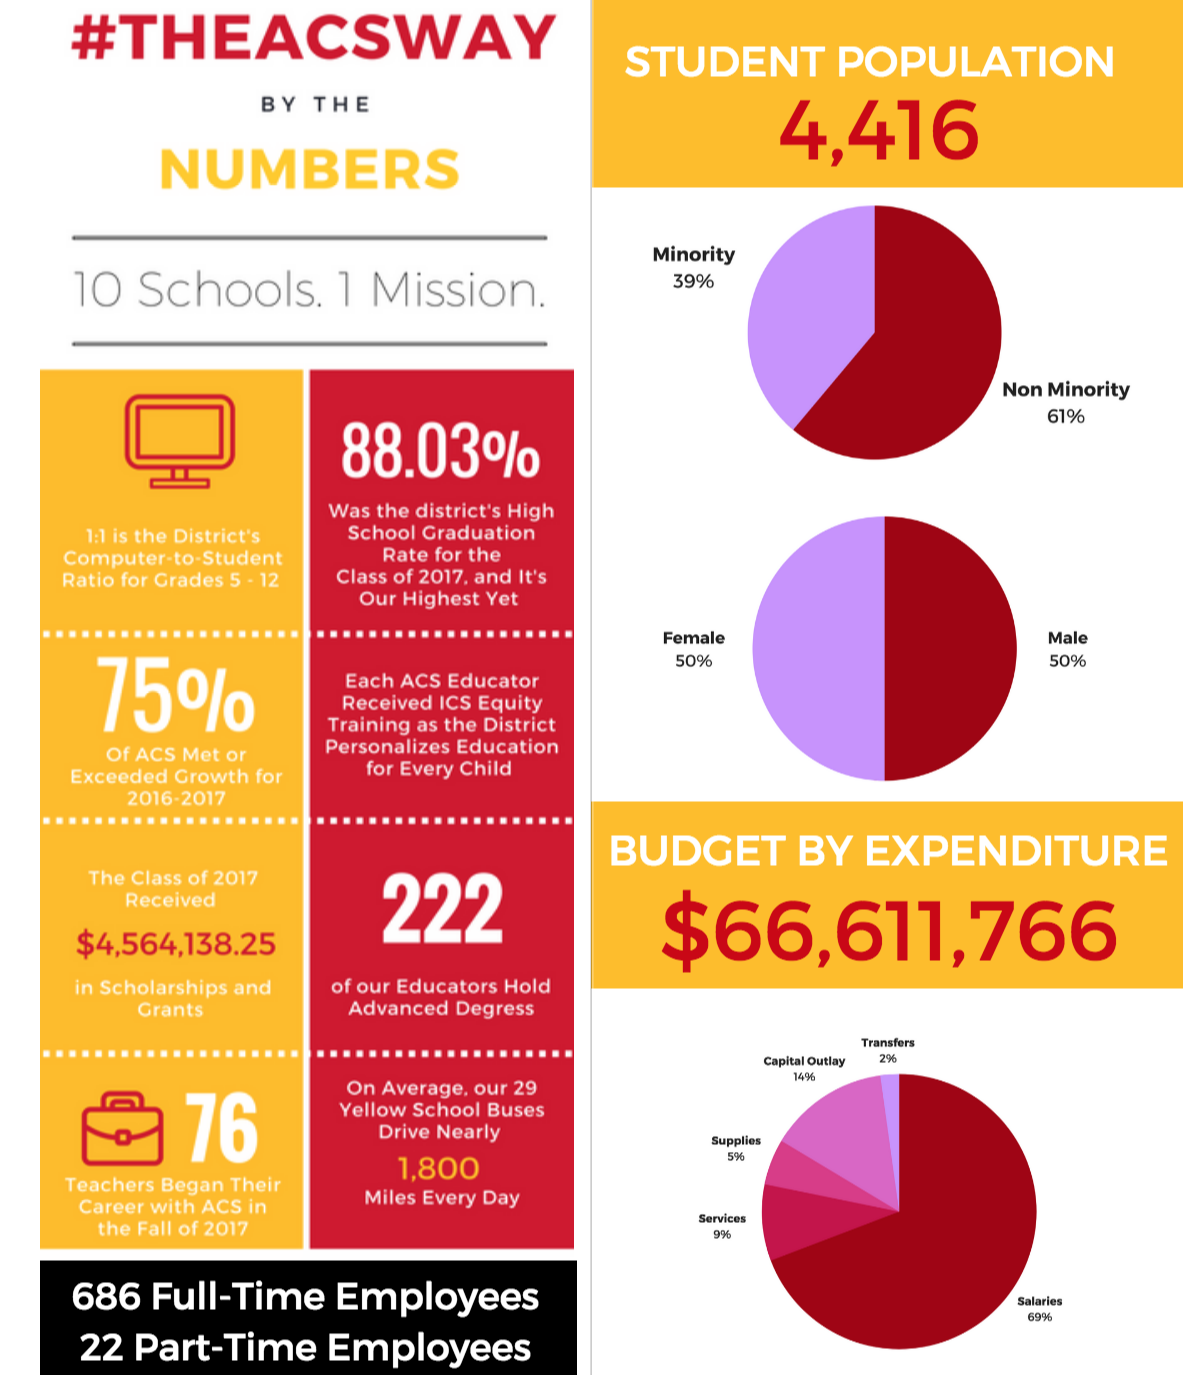 #TheACSWay By the Numbers